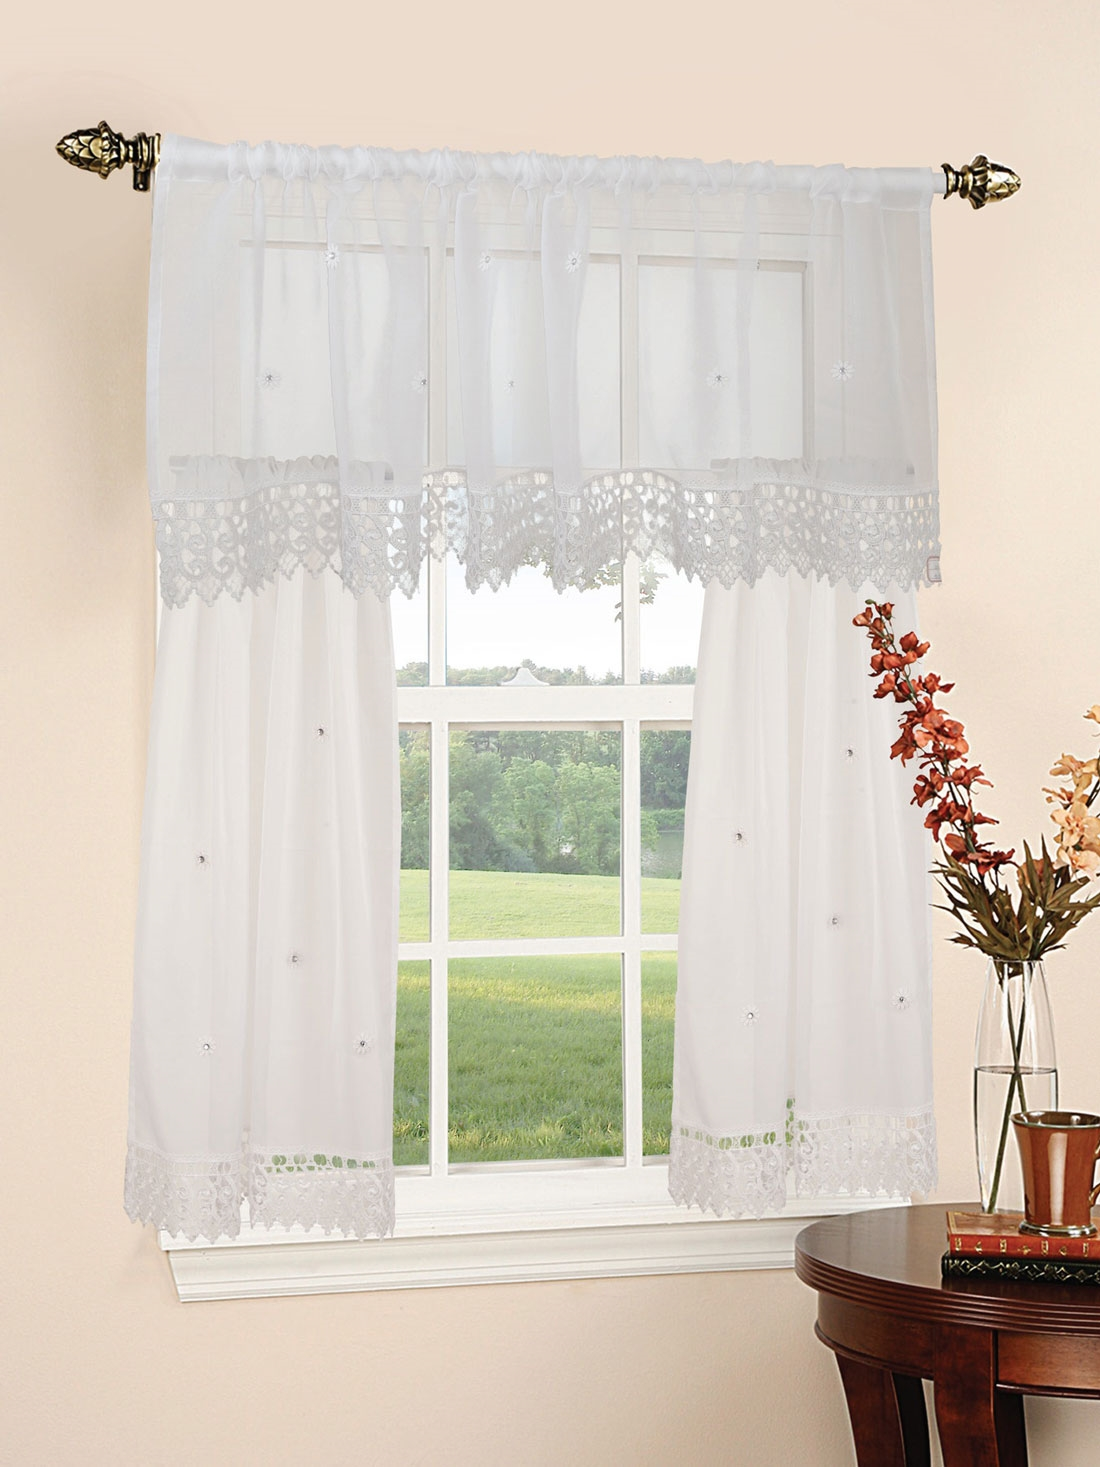 Daisy Design Sheer 3pc Kitchen Curtain Set 18 60 Quot Valance